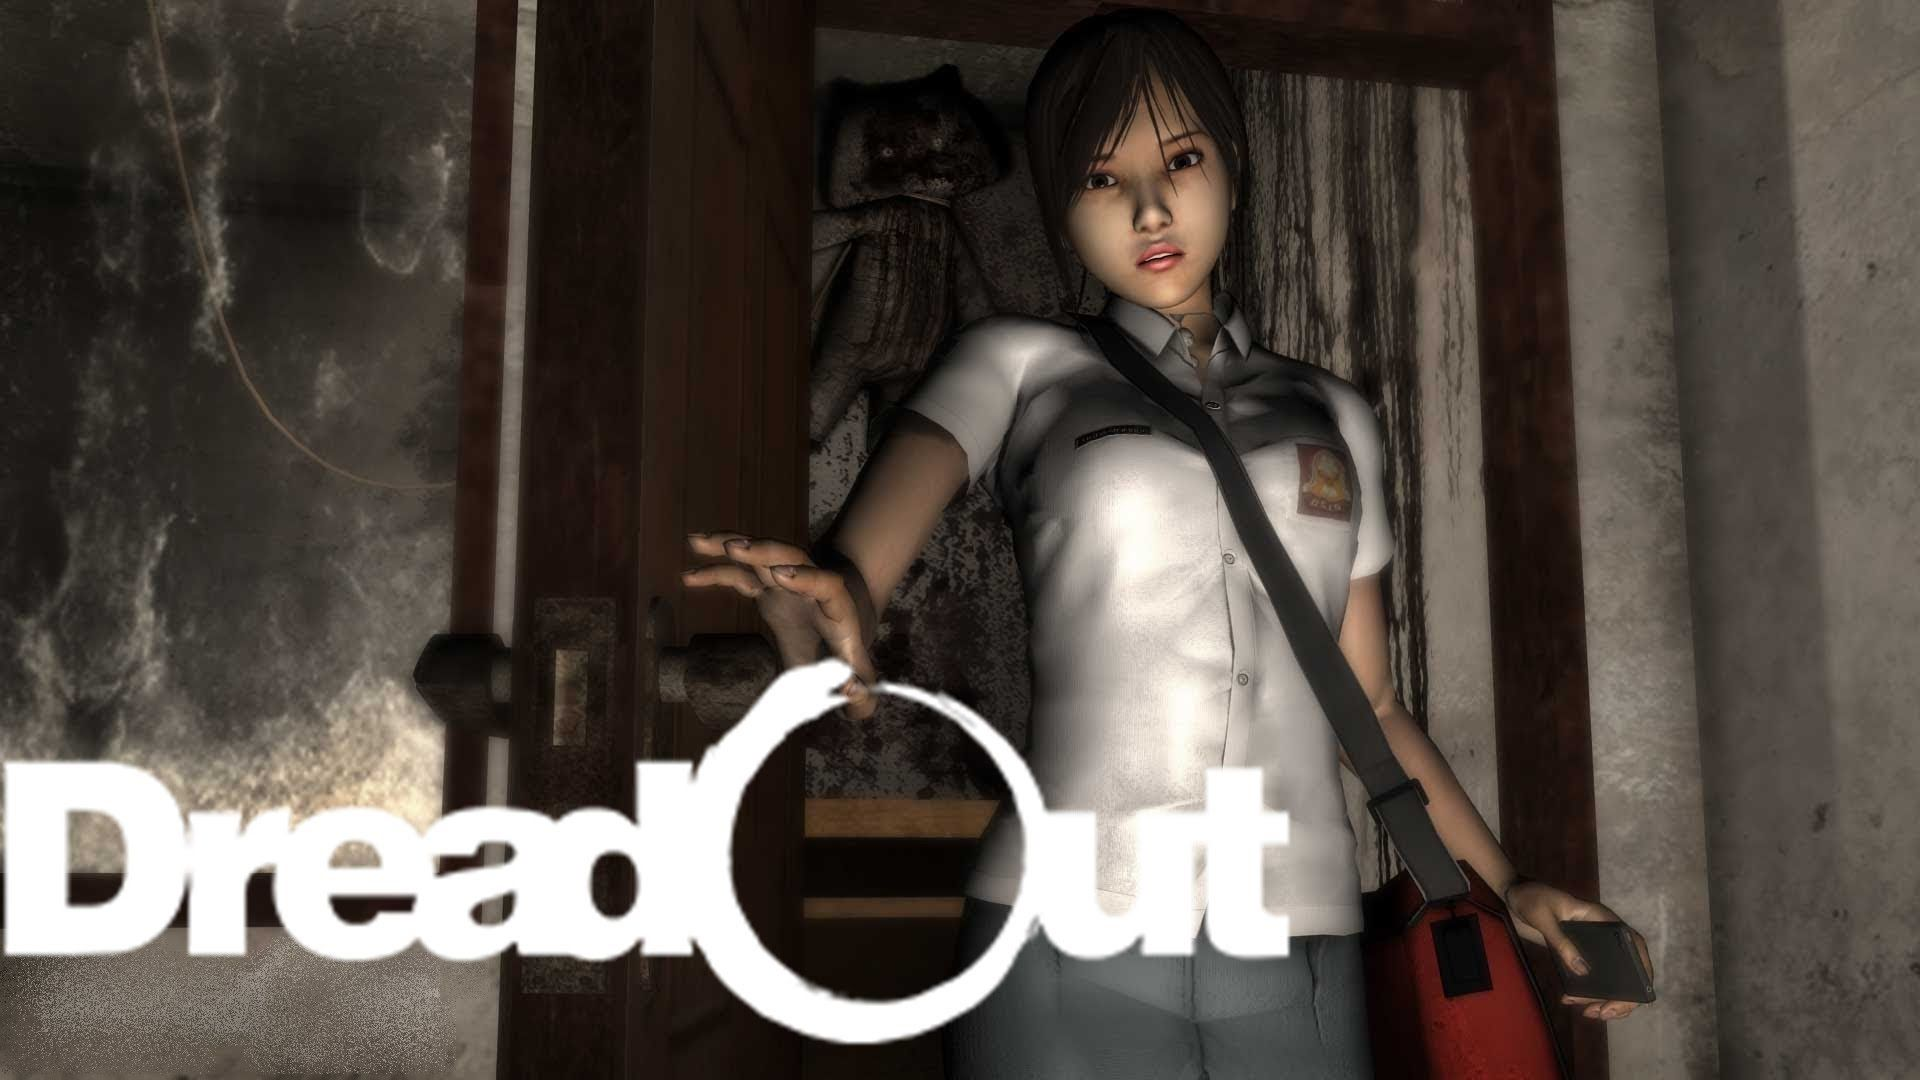 Dreadout Wallpapers Hd Wallpapers  Playstation Portable Nintendo Ds Mobile Game Desktop